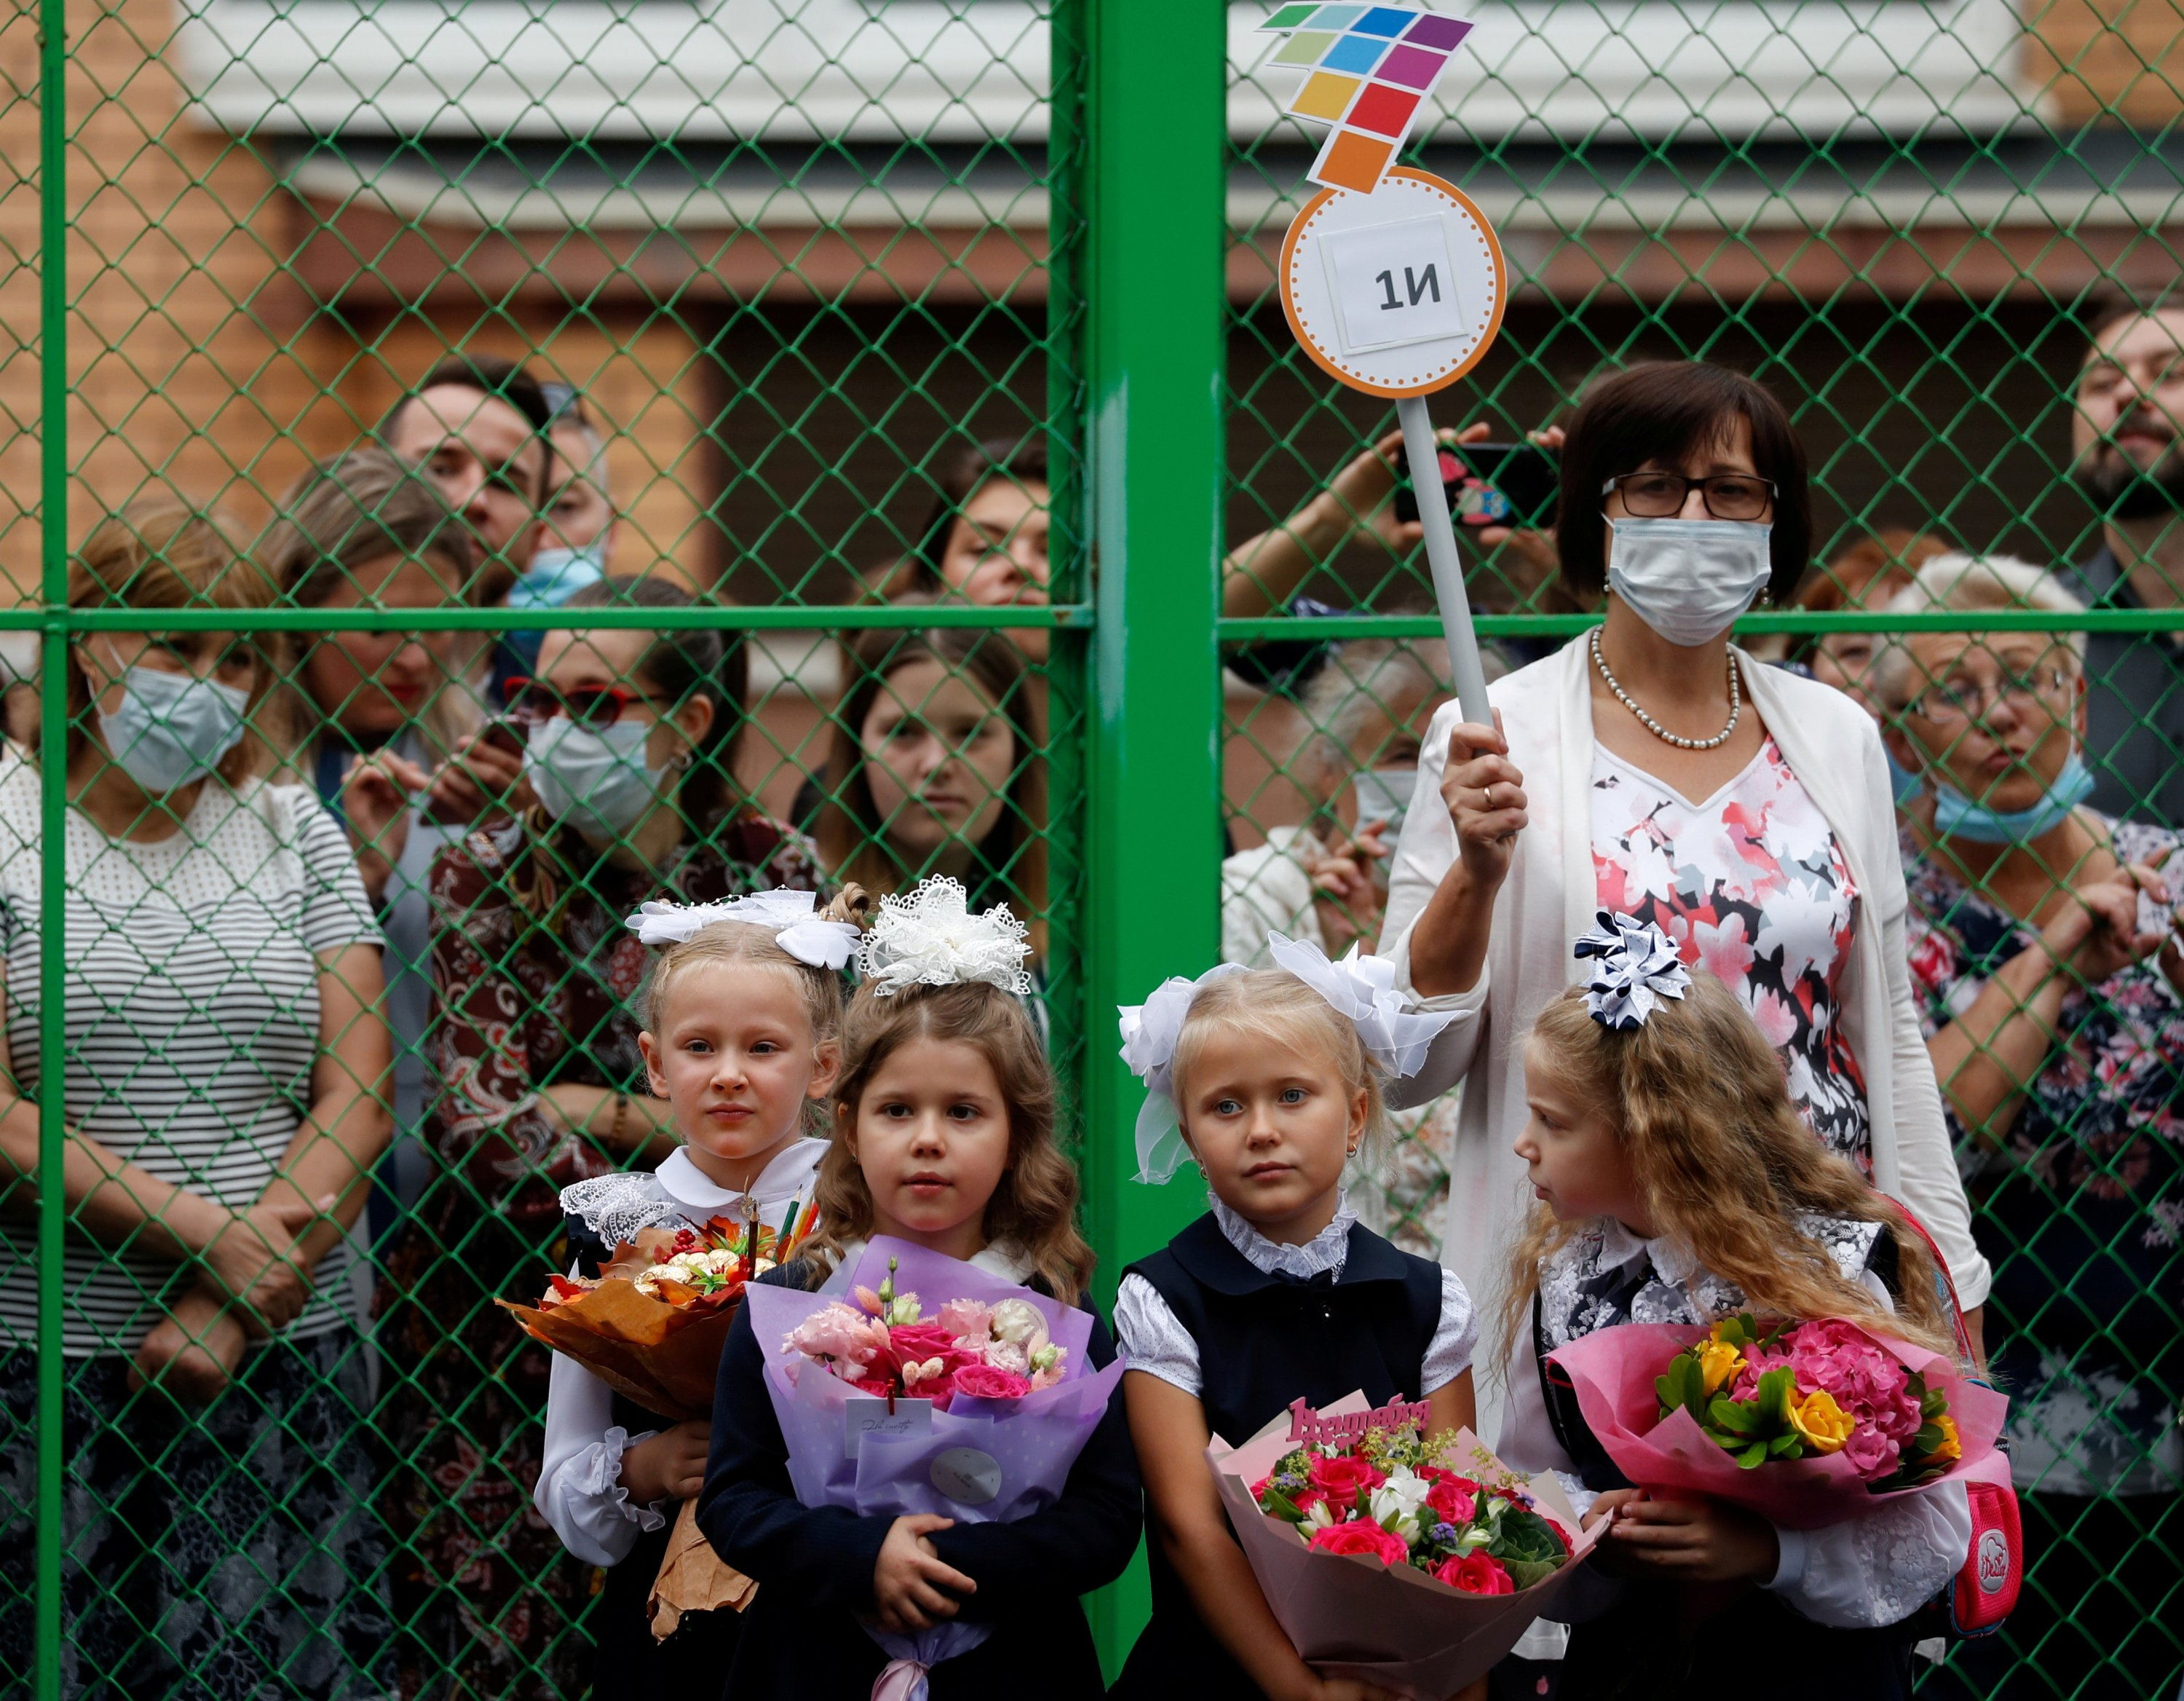 A teacher wears a face mask as she stands next to first graders during a ceremony marking the start of the new school year in Moscow, Russia September 1, 2020. (REUTERS Photo)